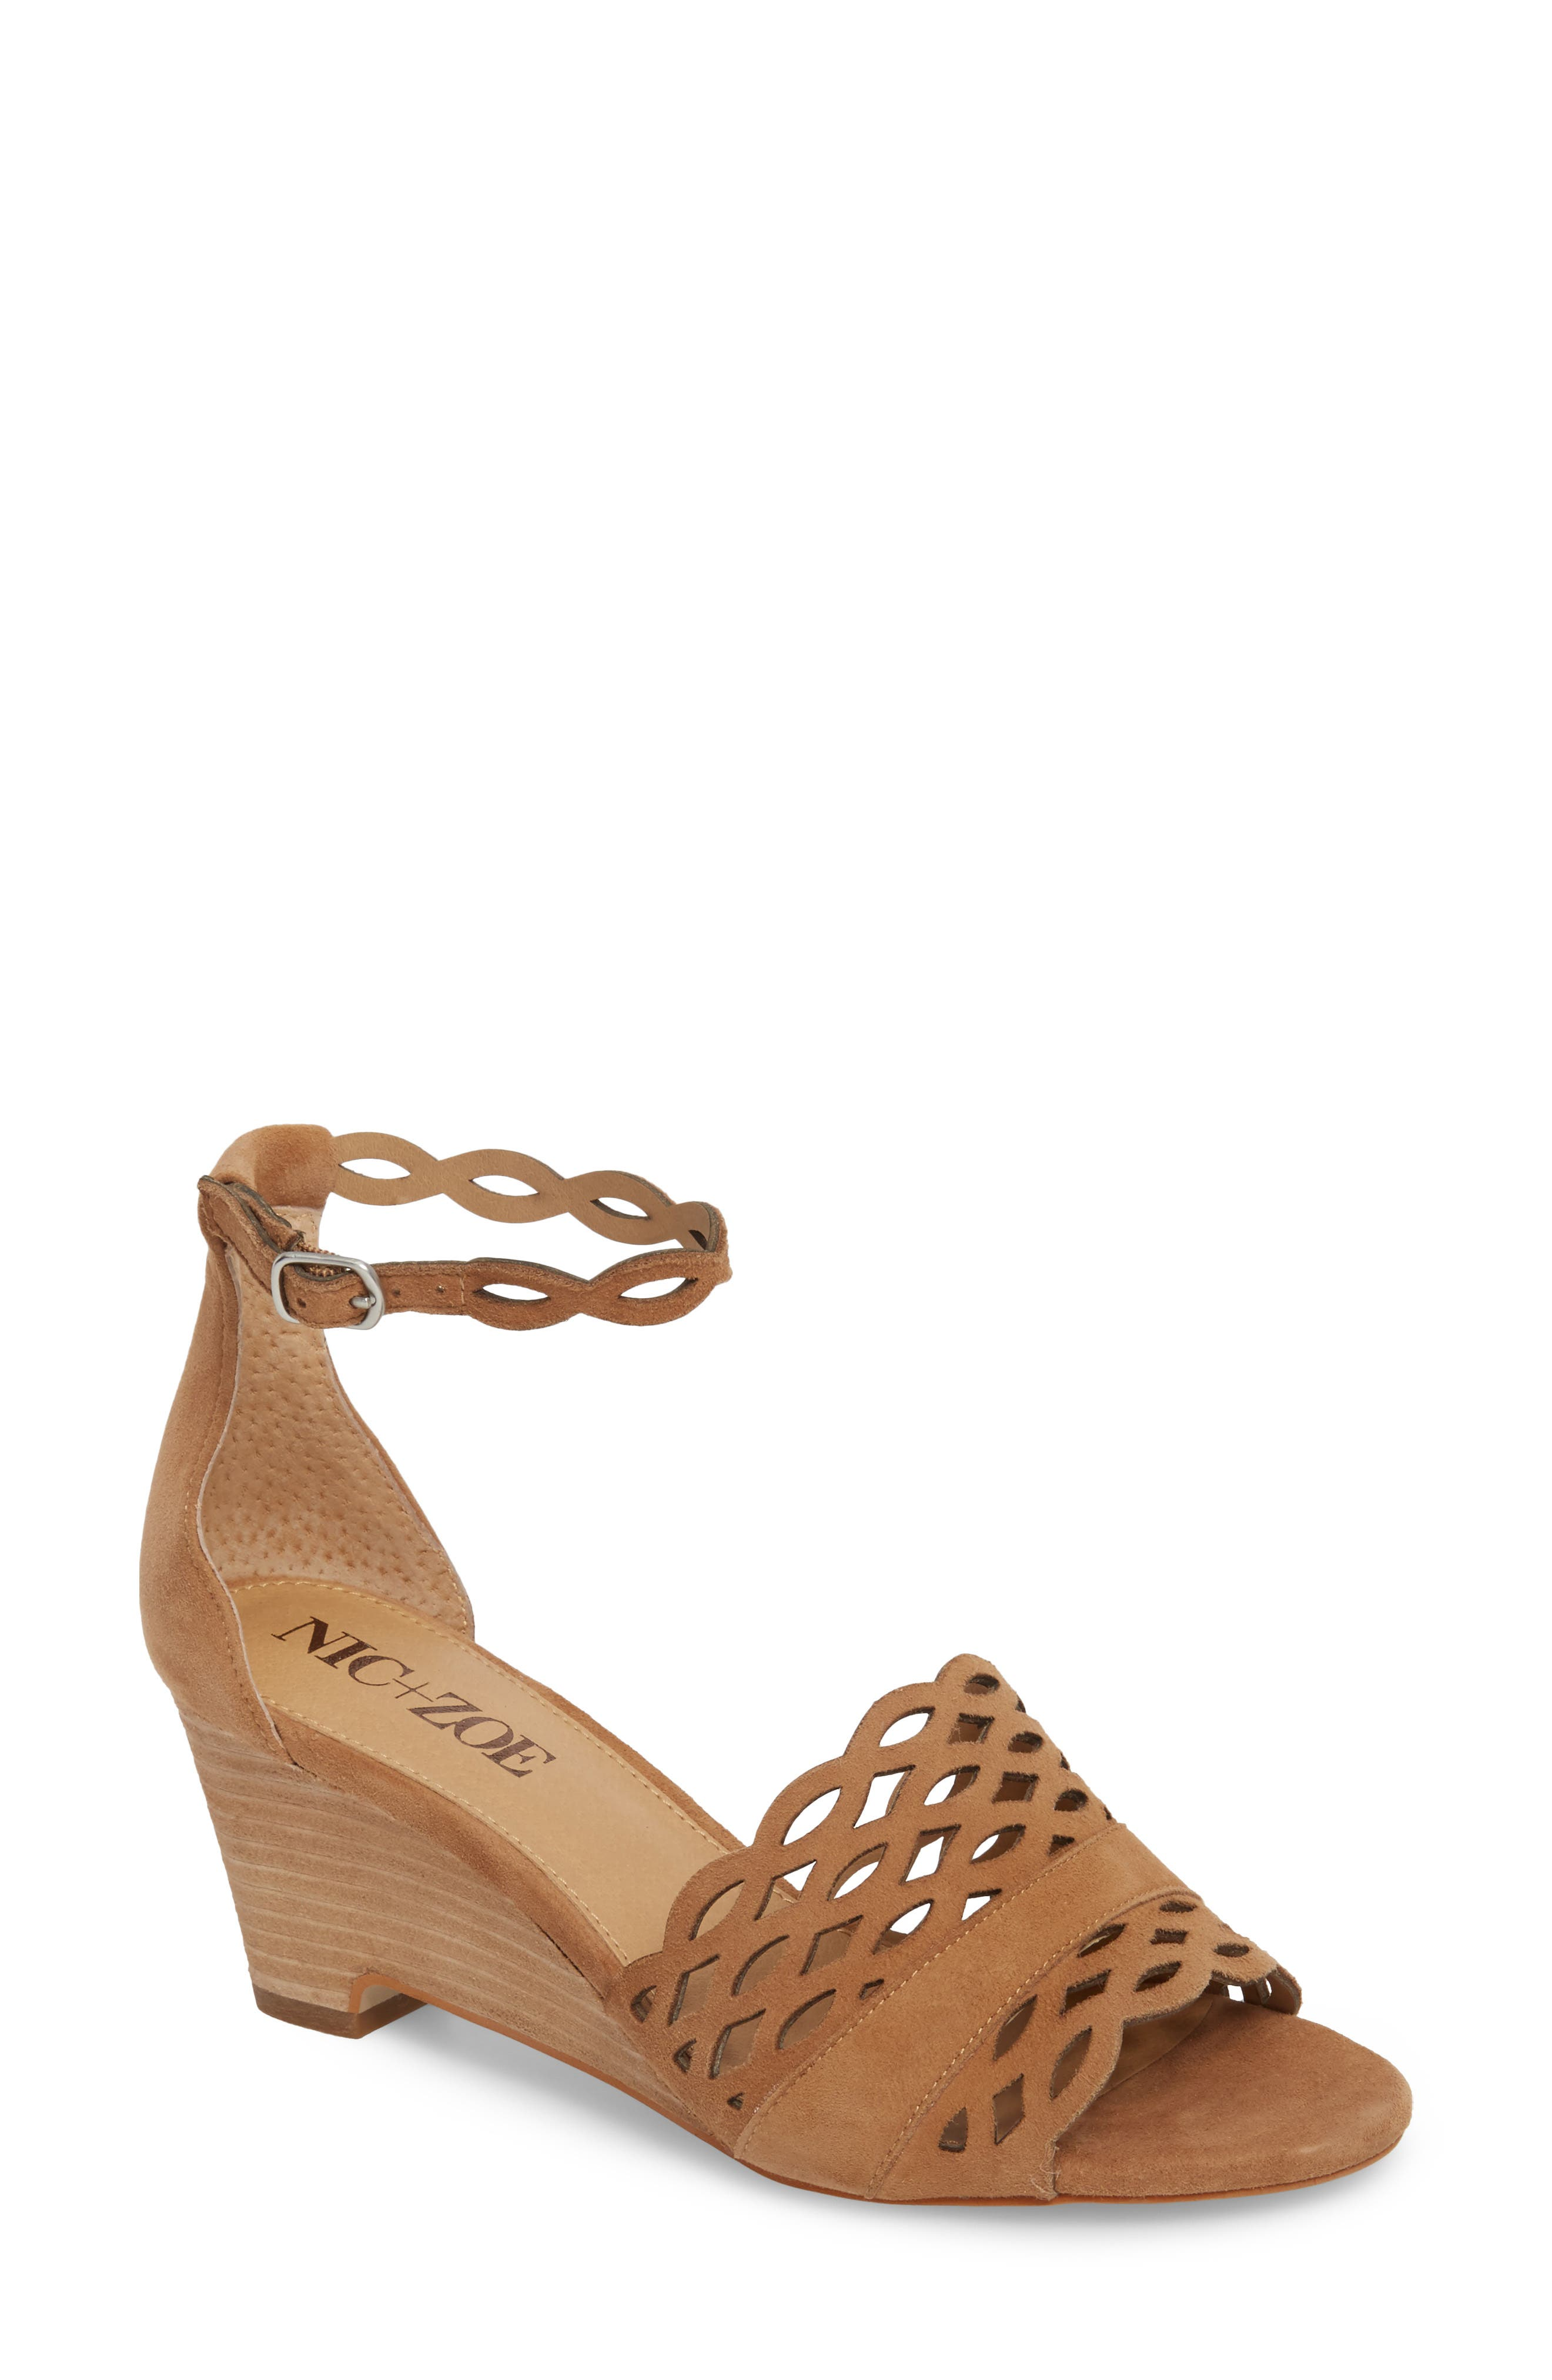 Flora Wedge Sandal,                             Main thumbnail 1, color,                             Fawn Leather